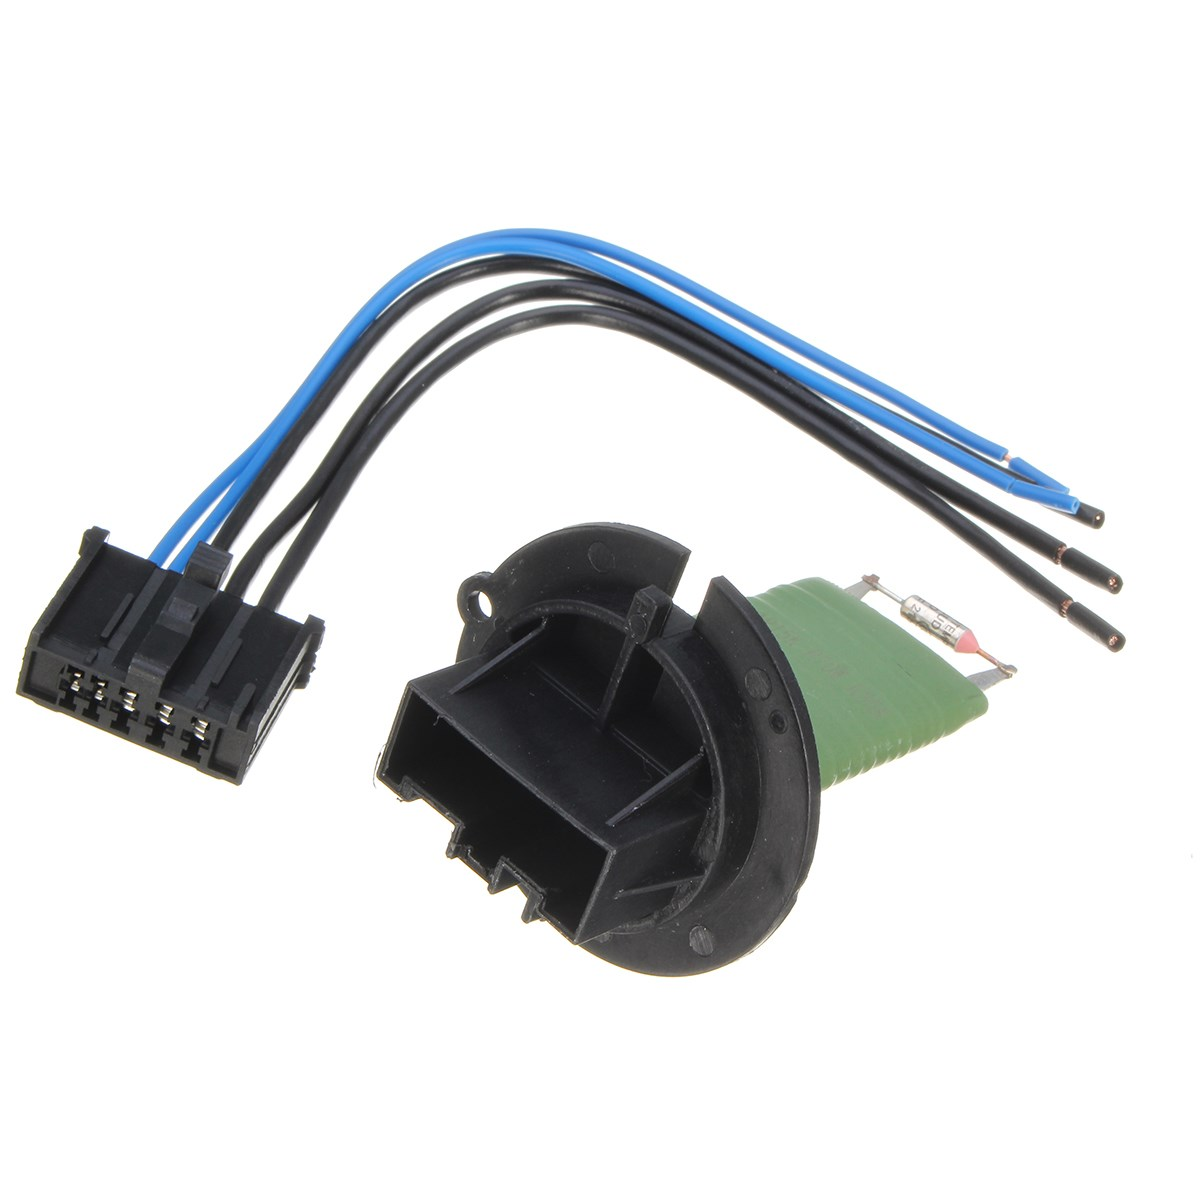 Heater Motor Resistor Connector Wiring Harness For Peugeot 206 307 Citroen C3 In Interior Mouldings From Automobiles Motorcycles On